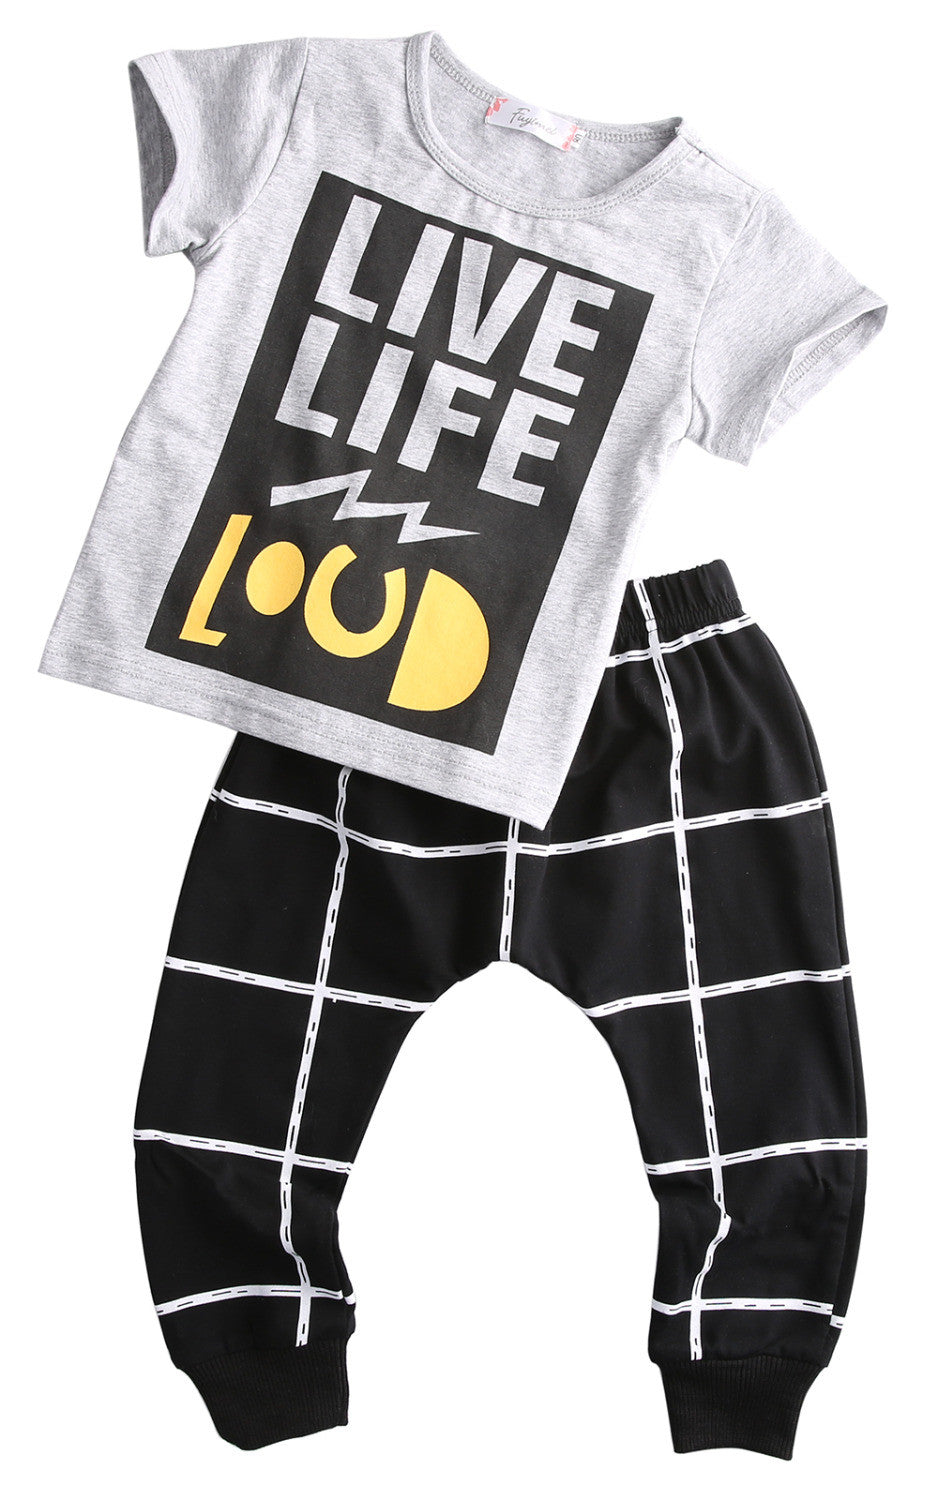 2pcs Newborn Infant Baby Boys Girls Clothes T-shirt Tops+Long Pants Outfits Sets For 2016 Spring